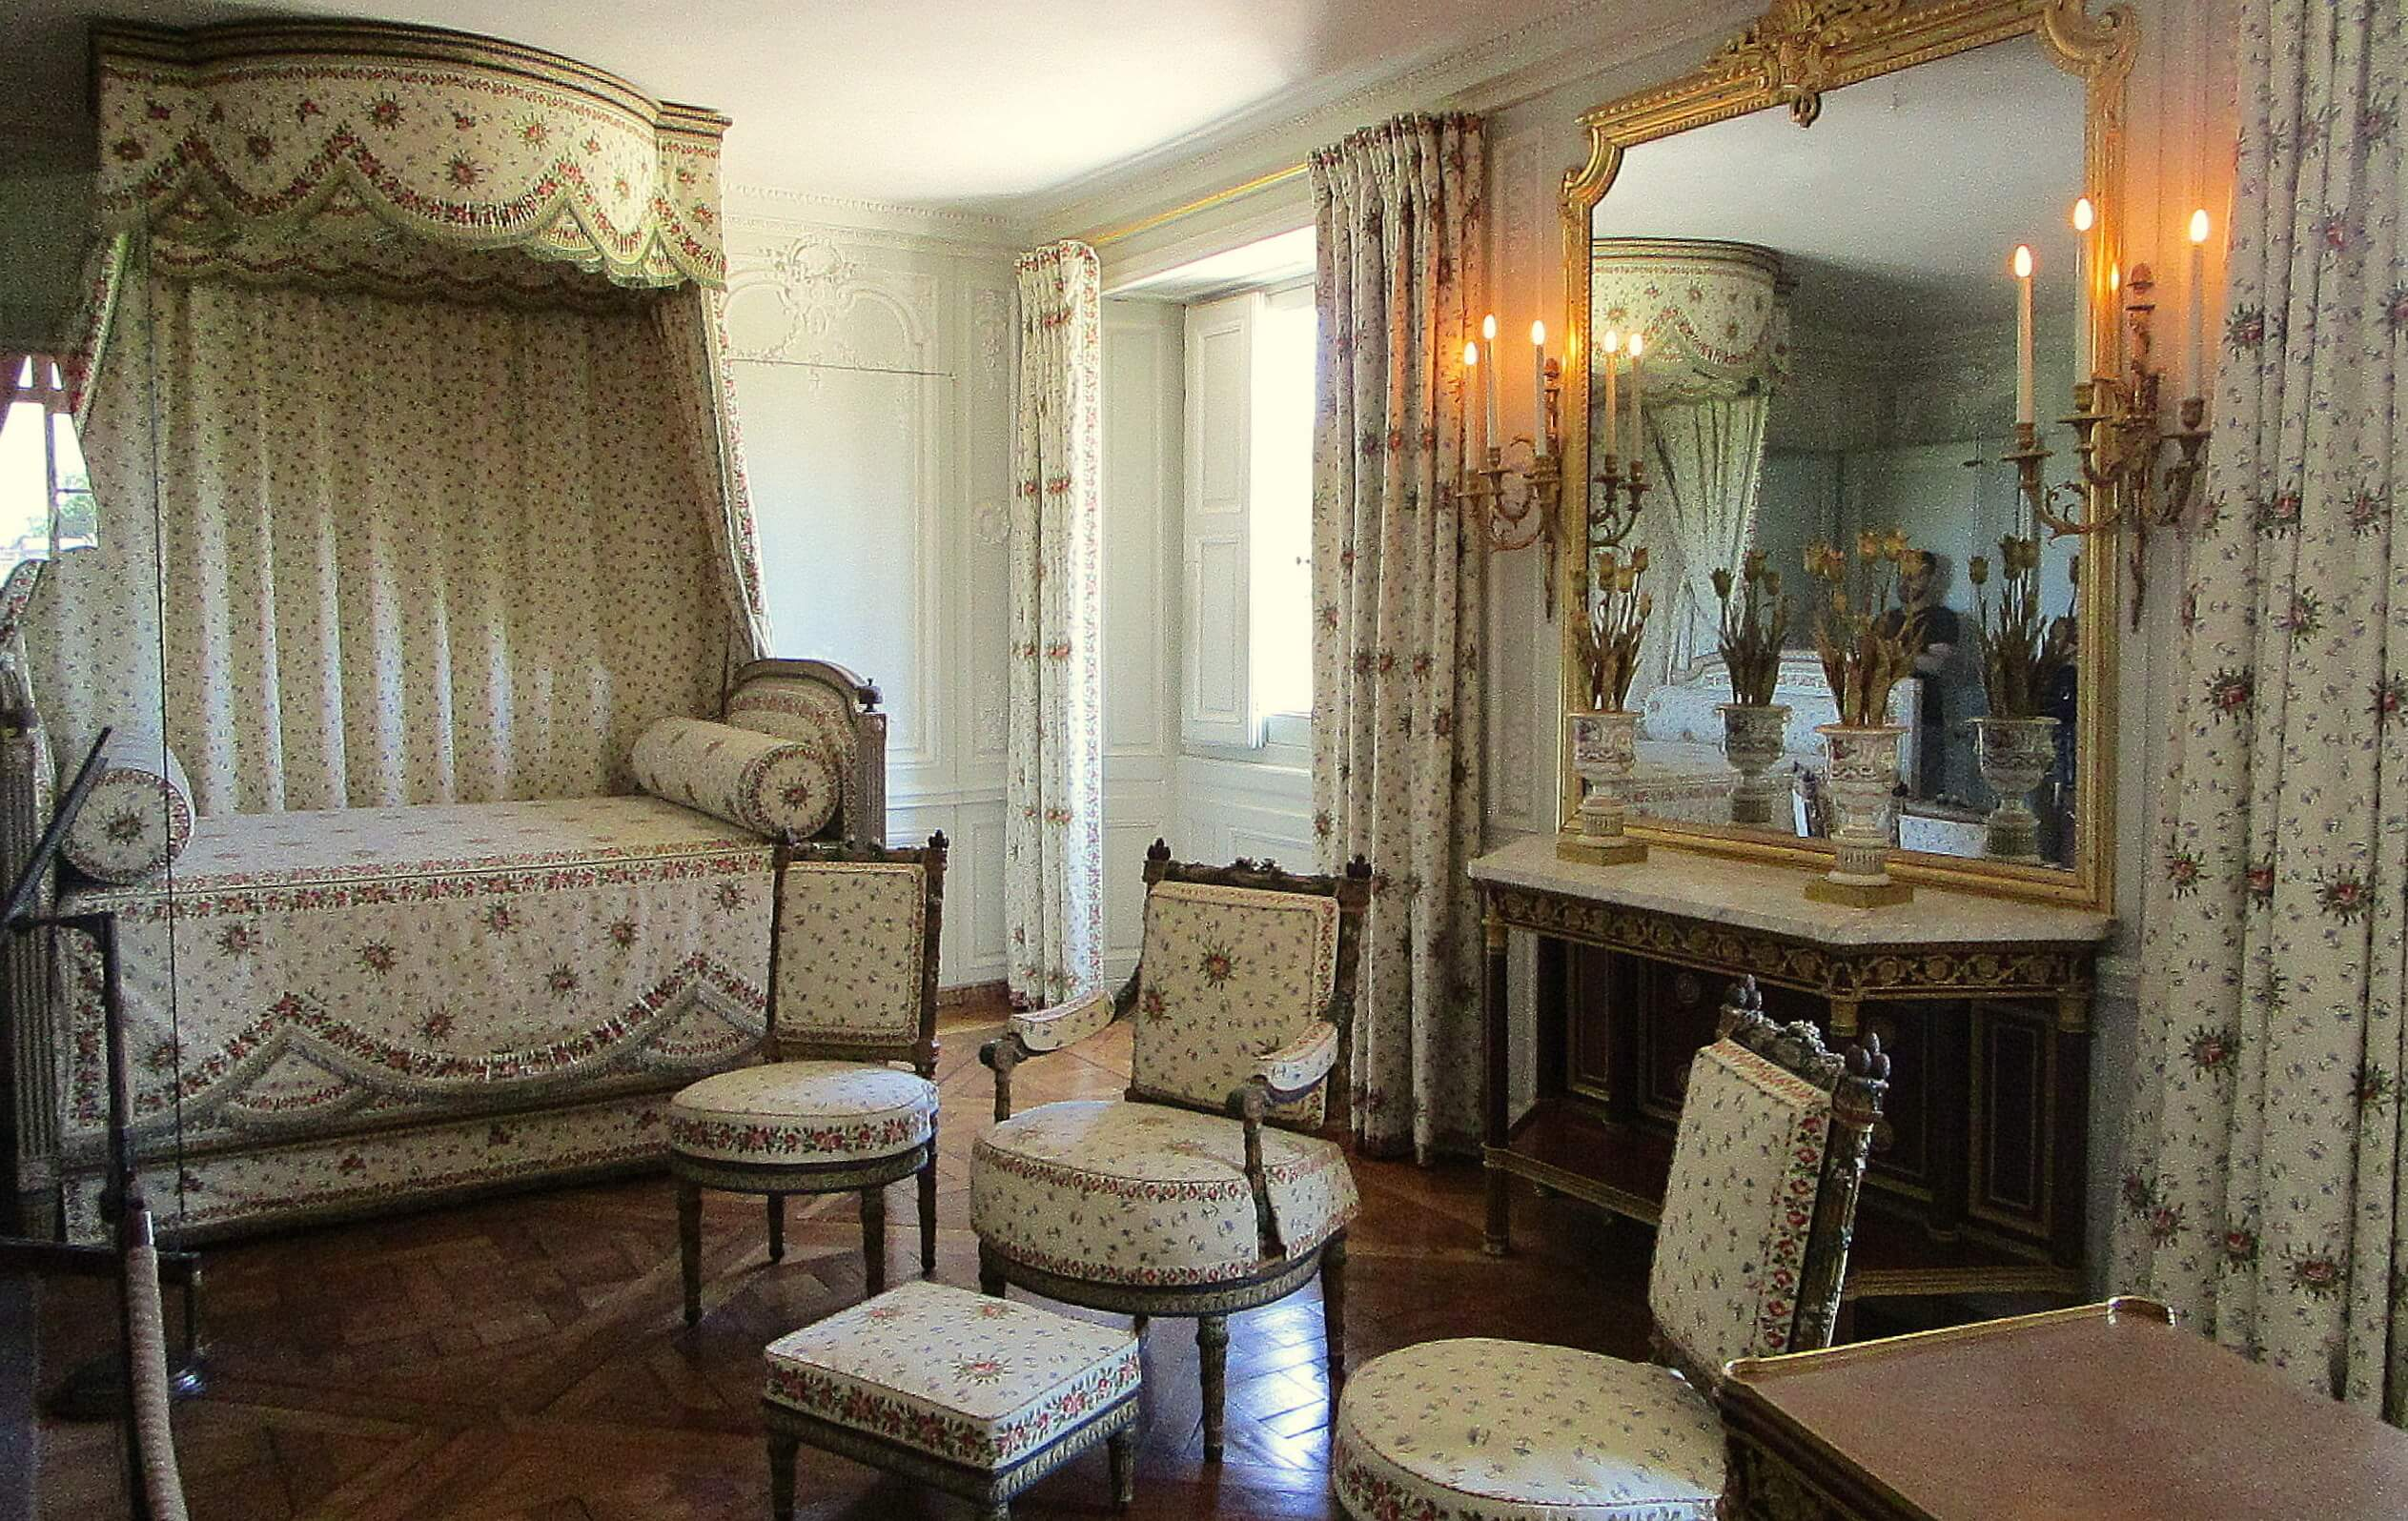 Marie Antoinettes Bedroom at the Petit Trianon